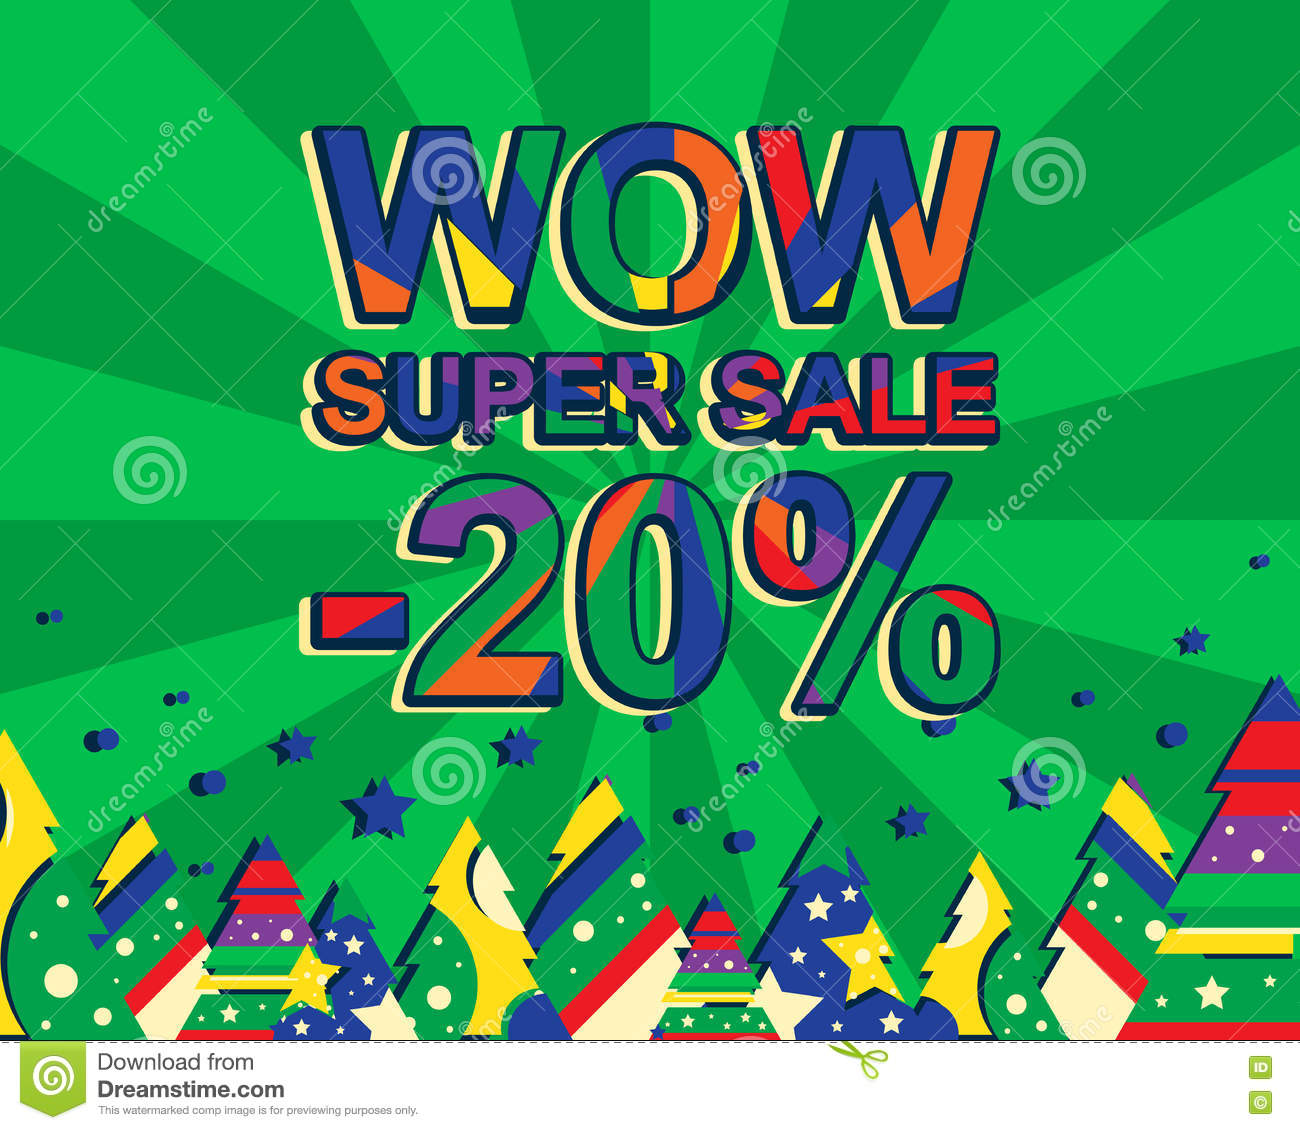 Big winter sale poster with wow super sale minus 20 percent text.